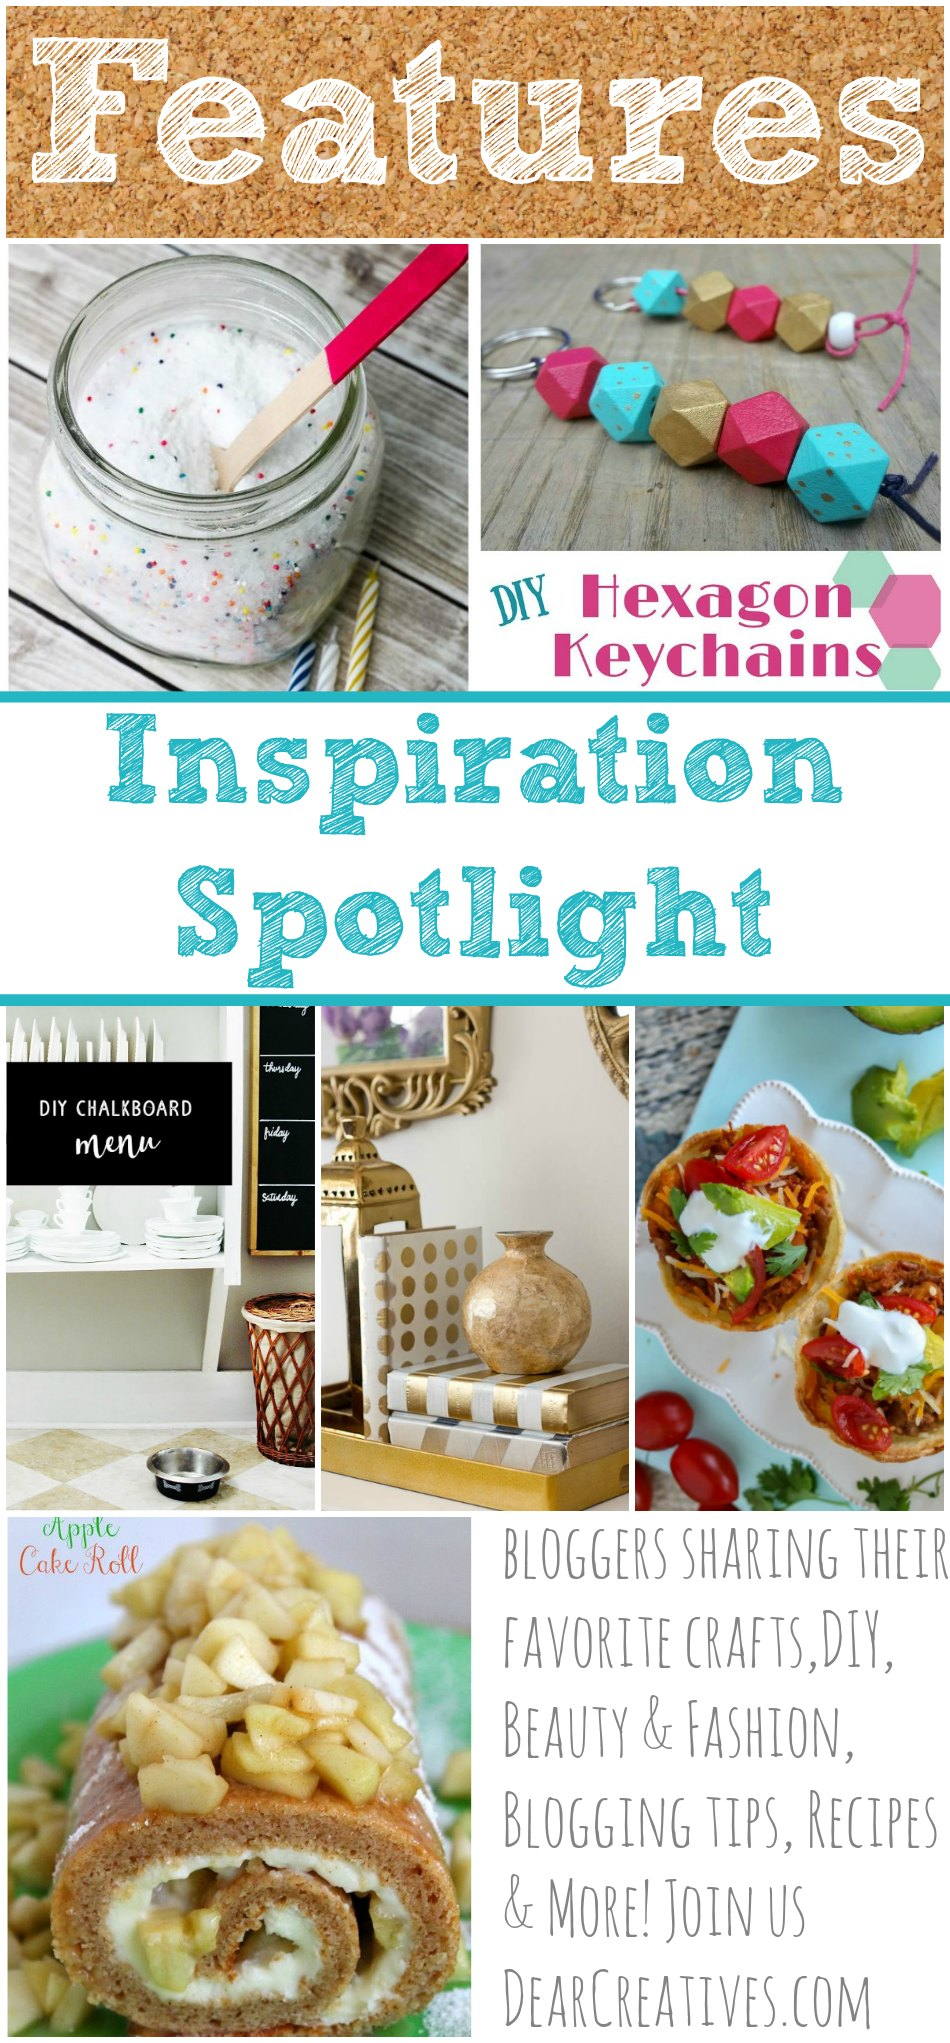 Linkup Party Inspiration Spotlight 210 Bloggers sharing their favorite crafts, DIY, beauty and fashion, blogging tips, recipes and more!